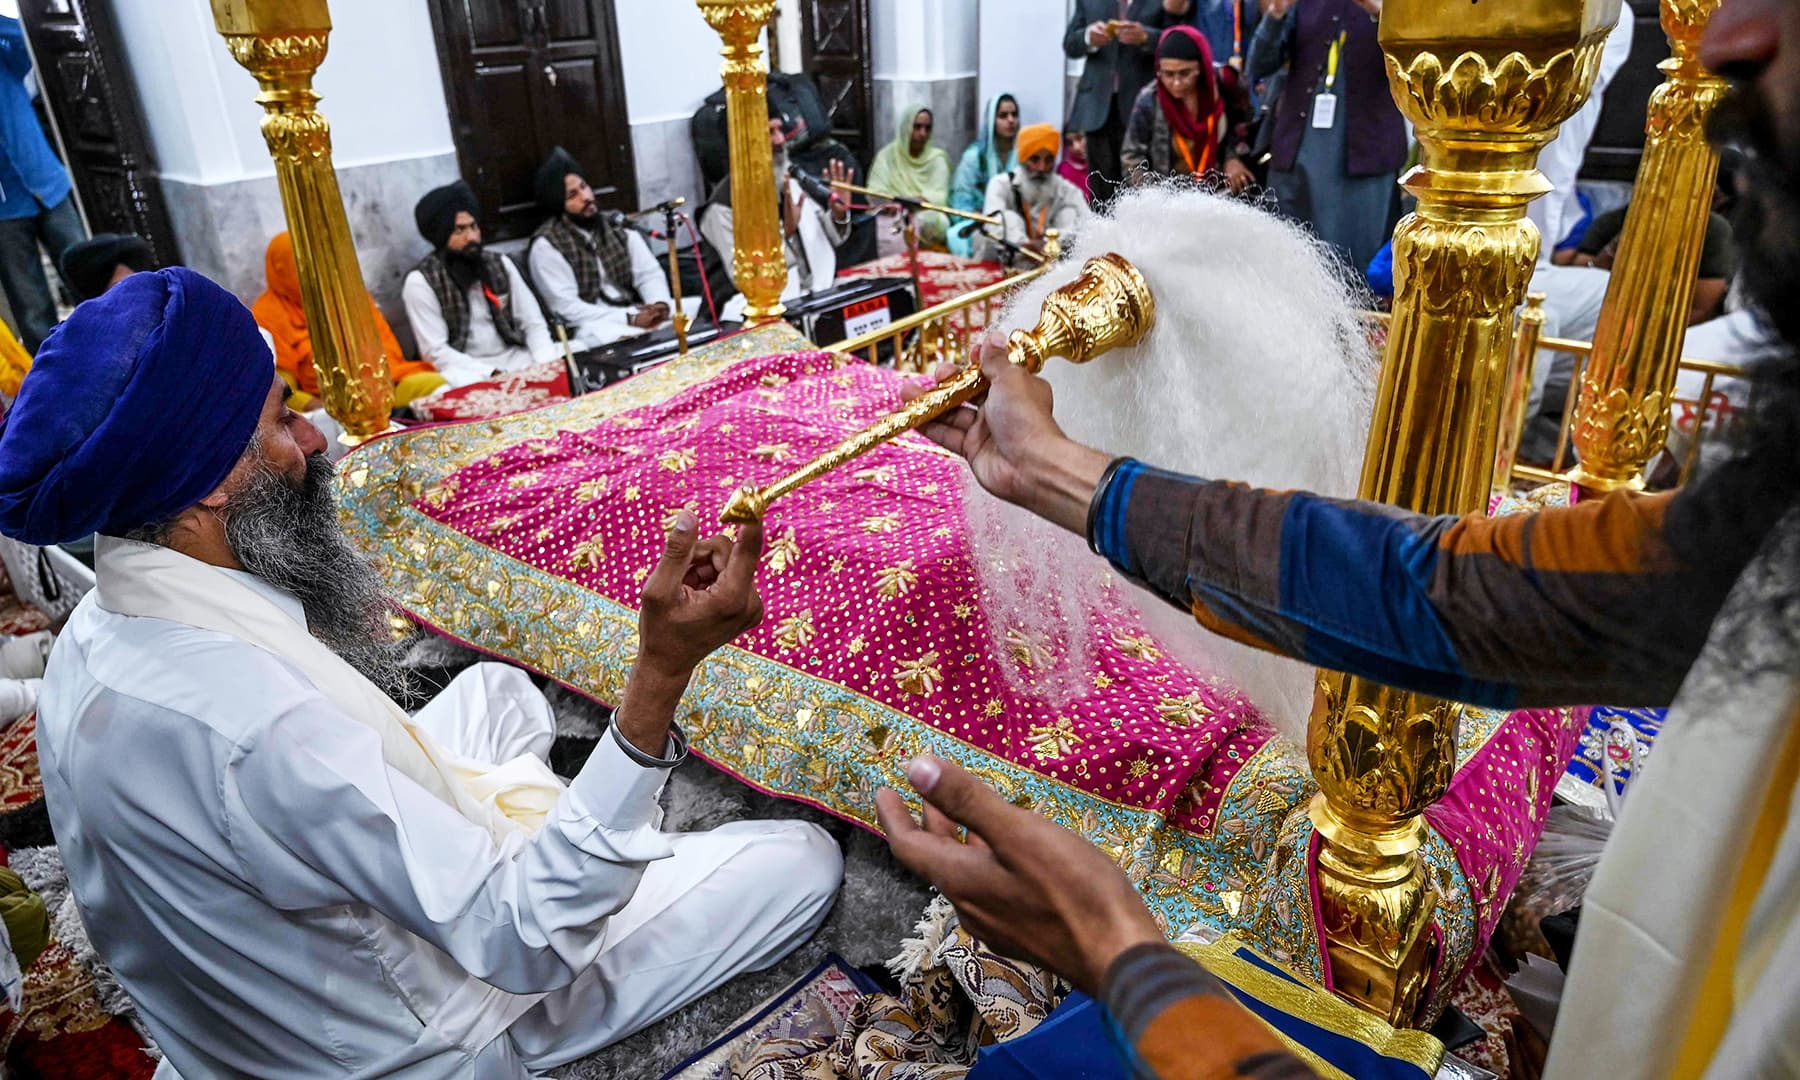 Sikh pilgrims take part in a religious ritual at the Shrine of Baba Guru Nanak Dev at Gurdwara Darbar Sahib in Kartarpur on Saturday. — AFP